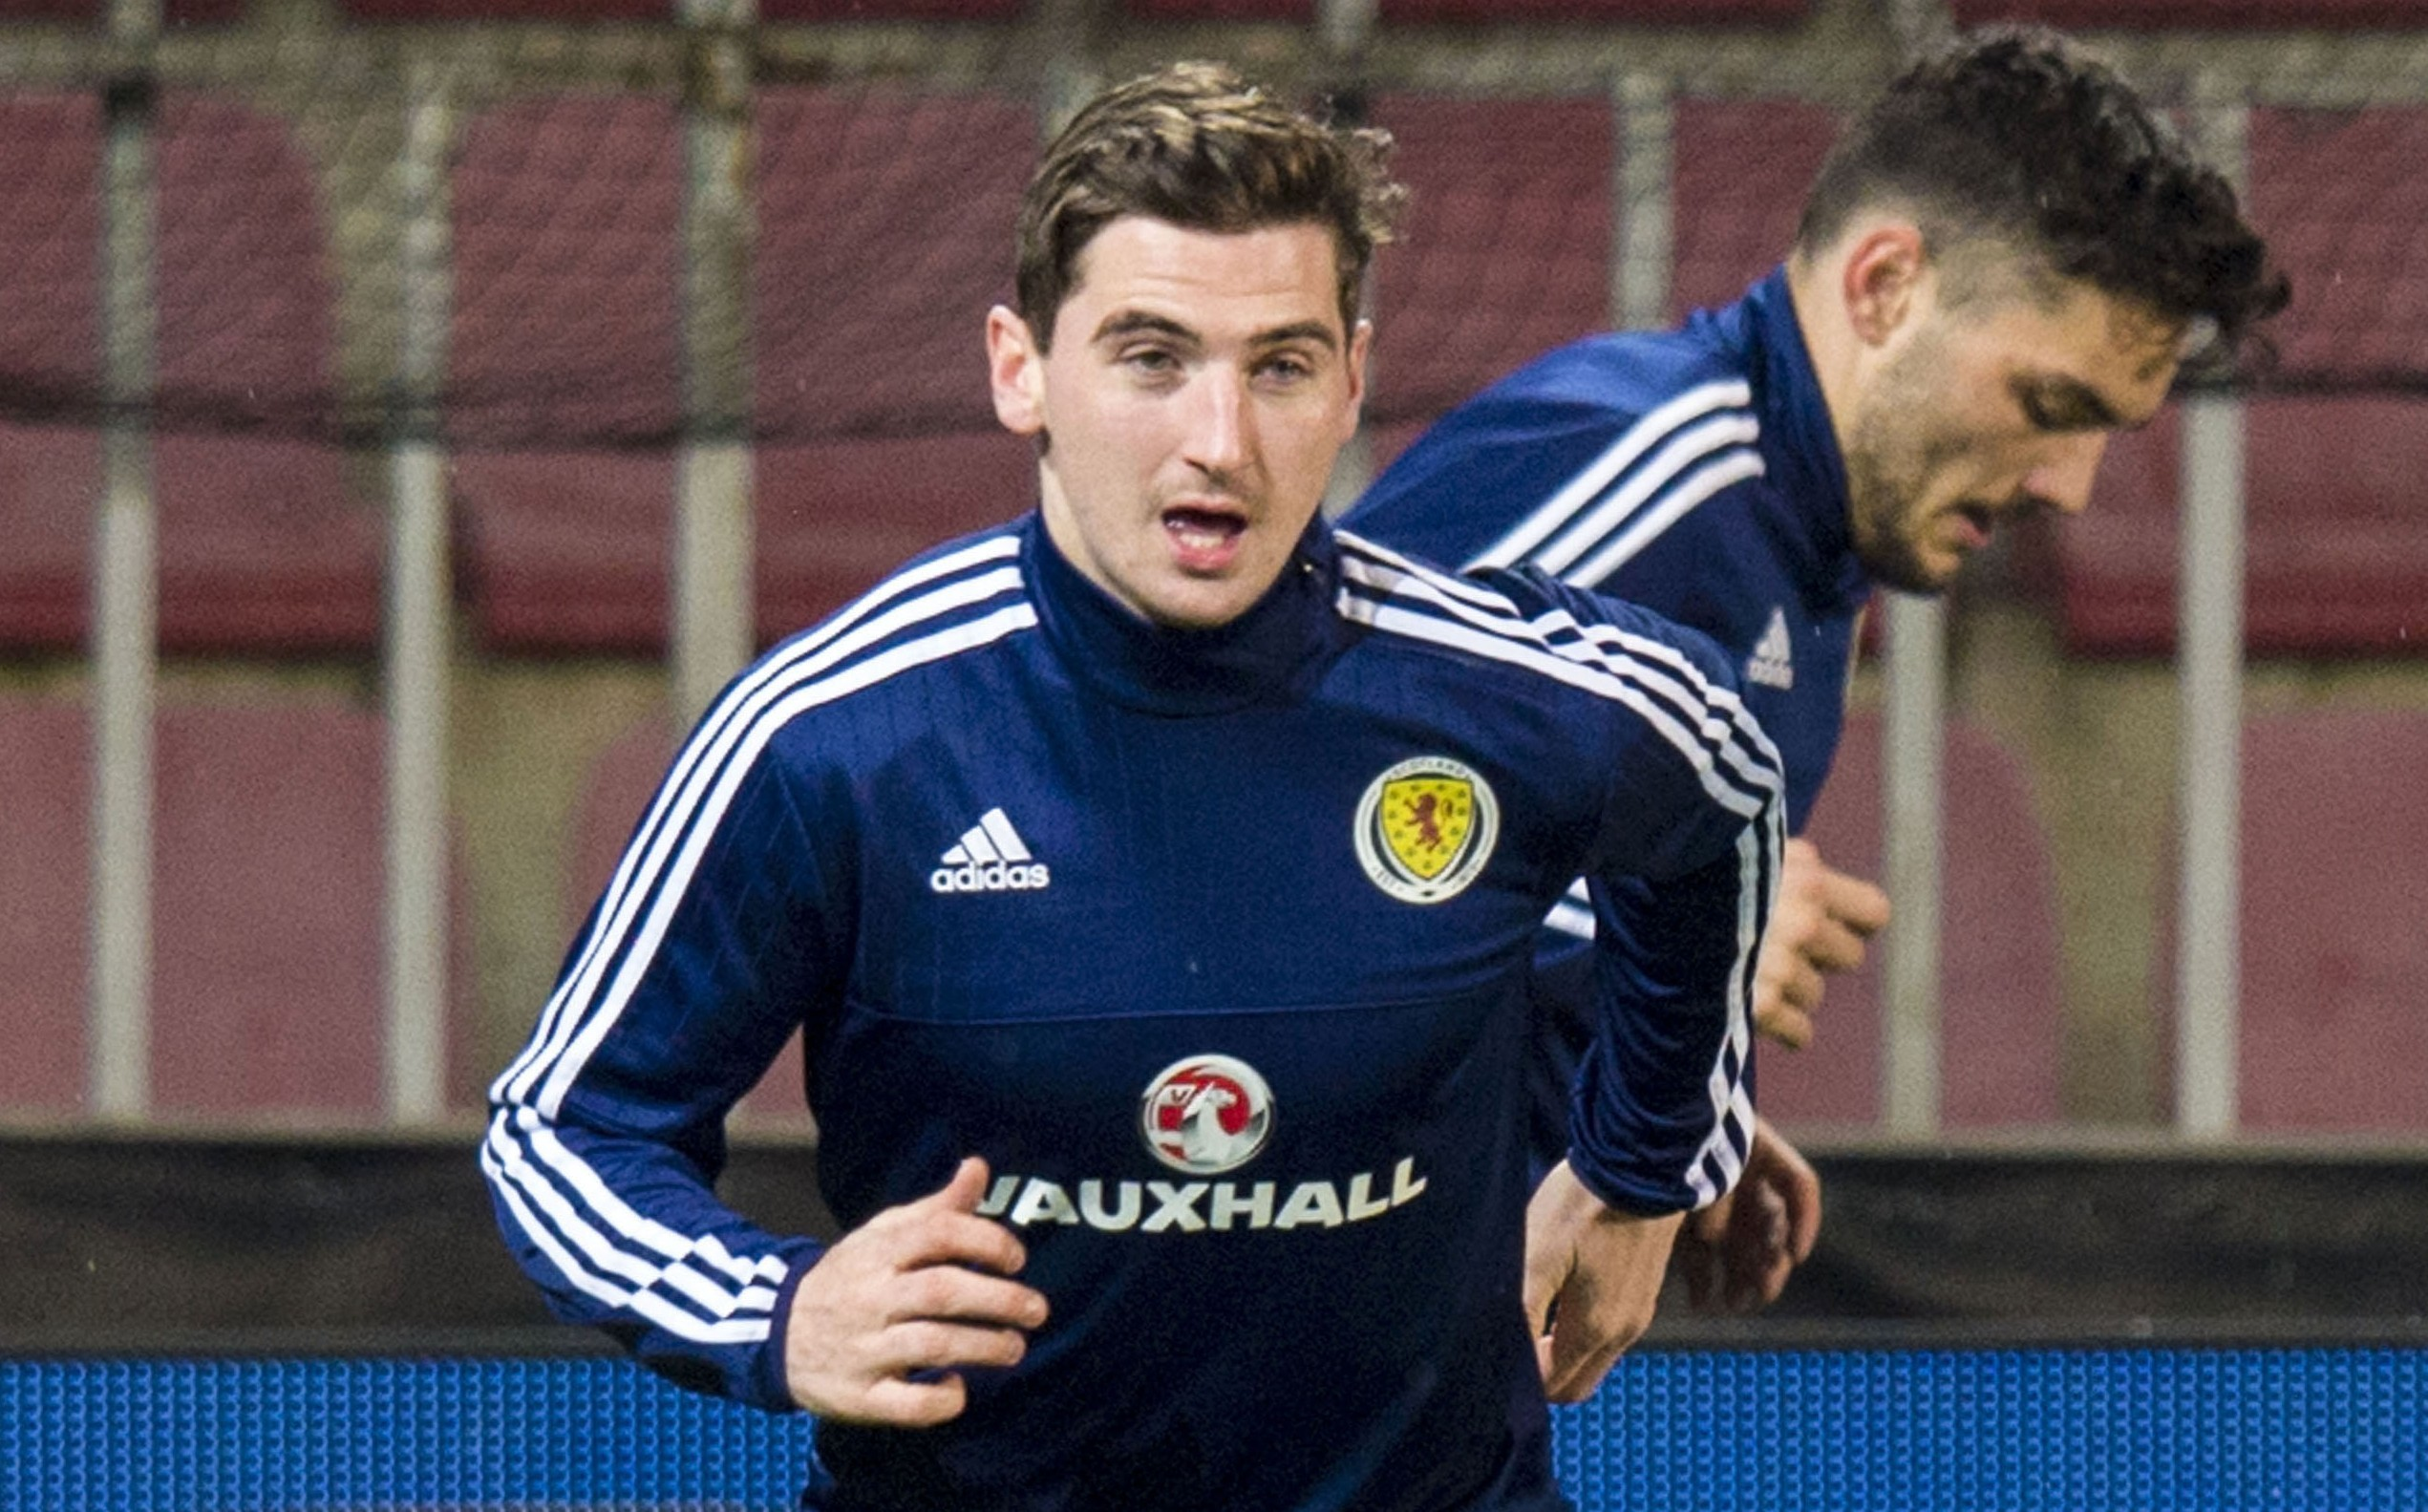 Aberdeen and Scotland's Kenny McLean.